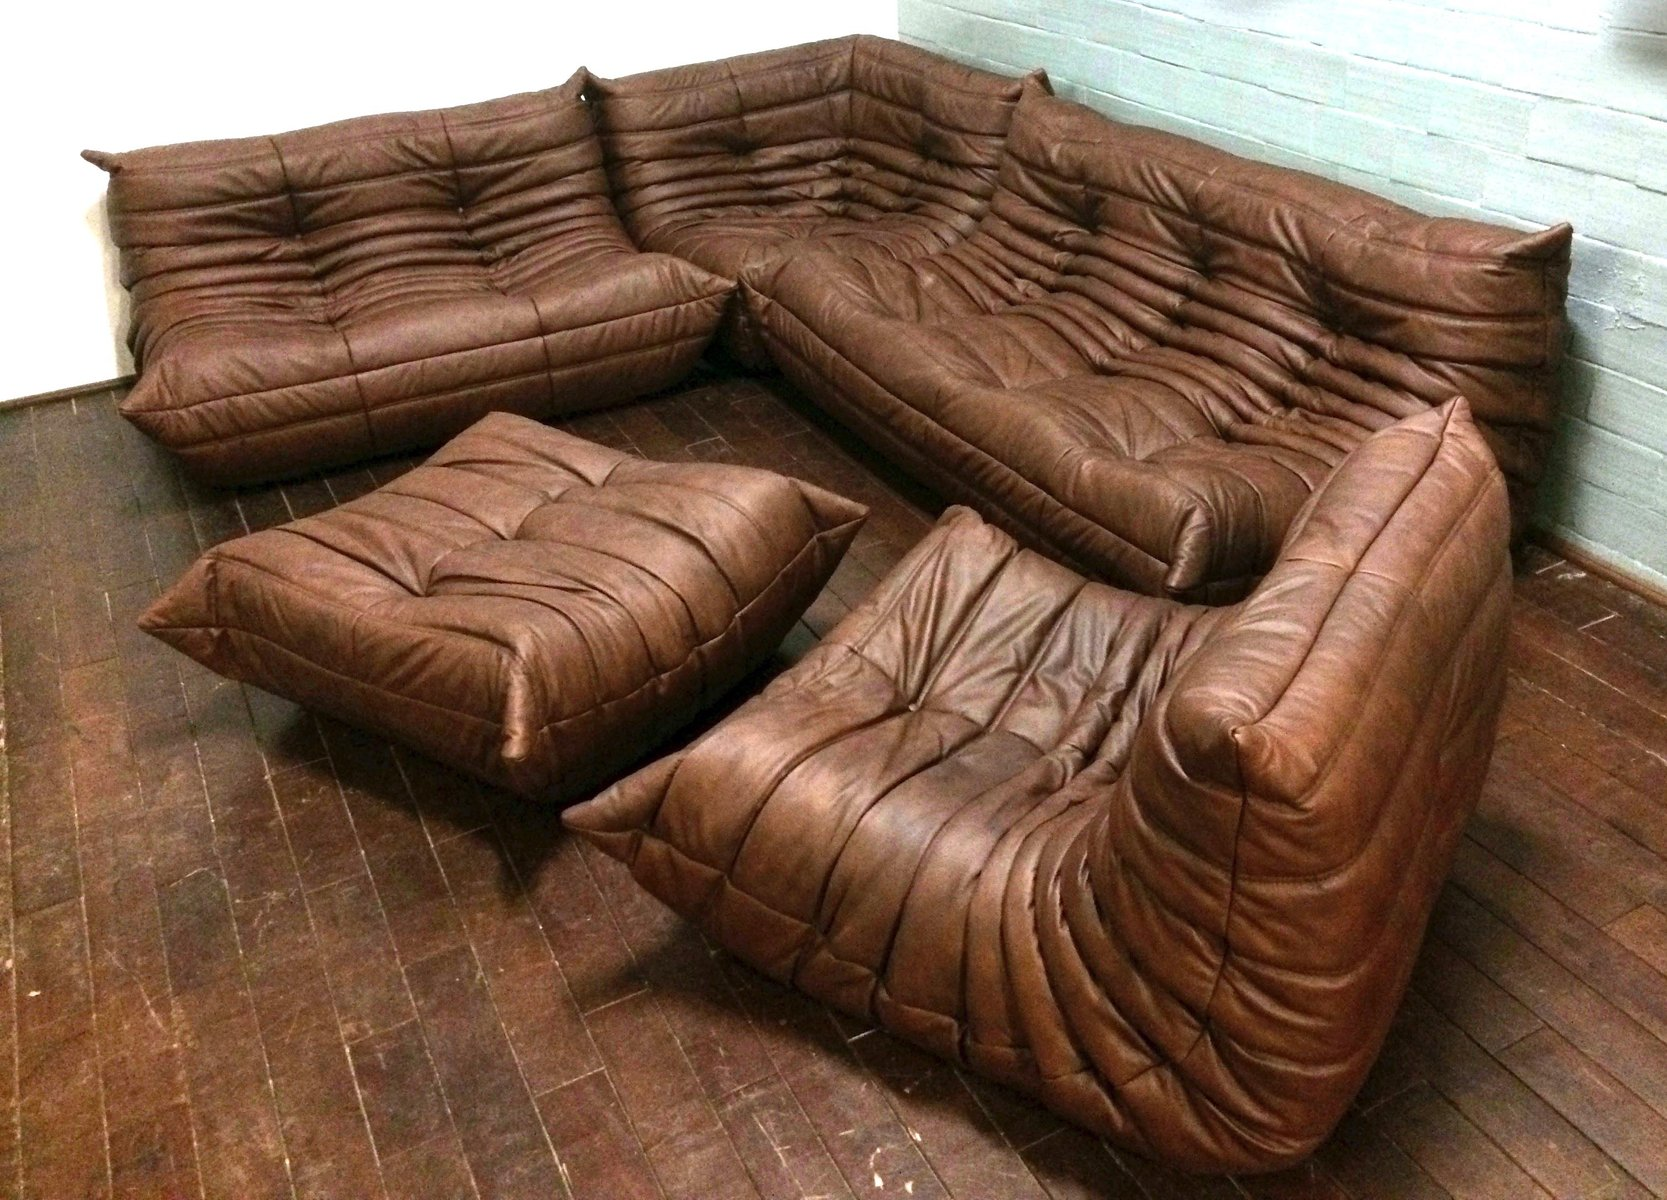 Vintage togo leather living room set by michel ducaroy for ligne roset for sale at pamono - Togo ligne roset ...